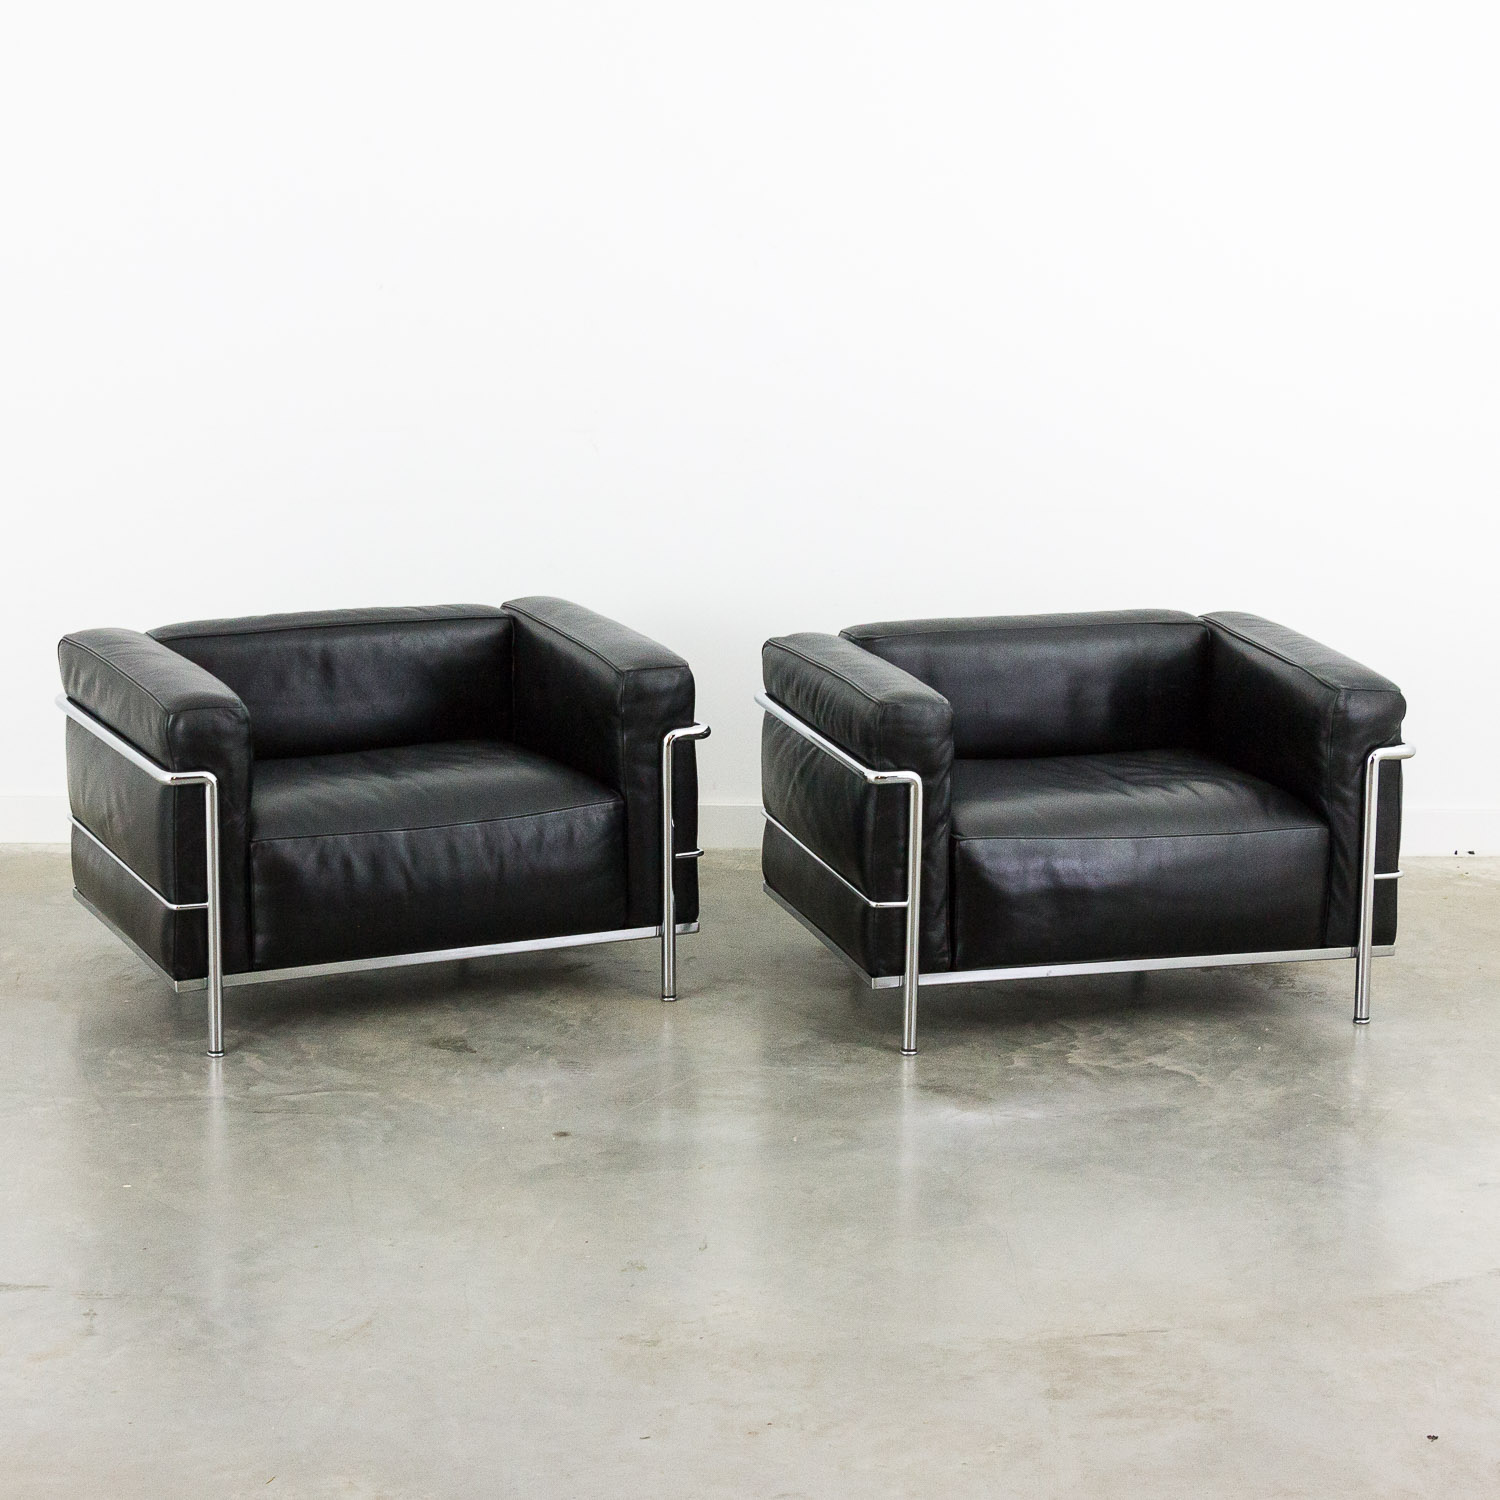 LC3 by le Corbusier for Cassina